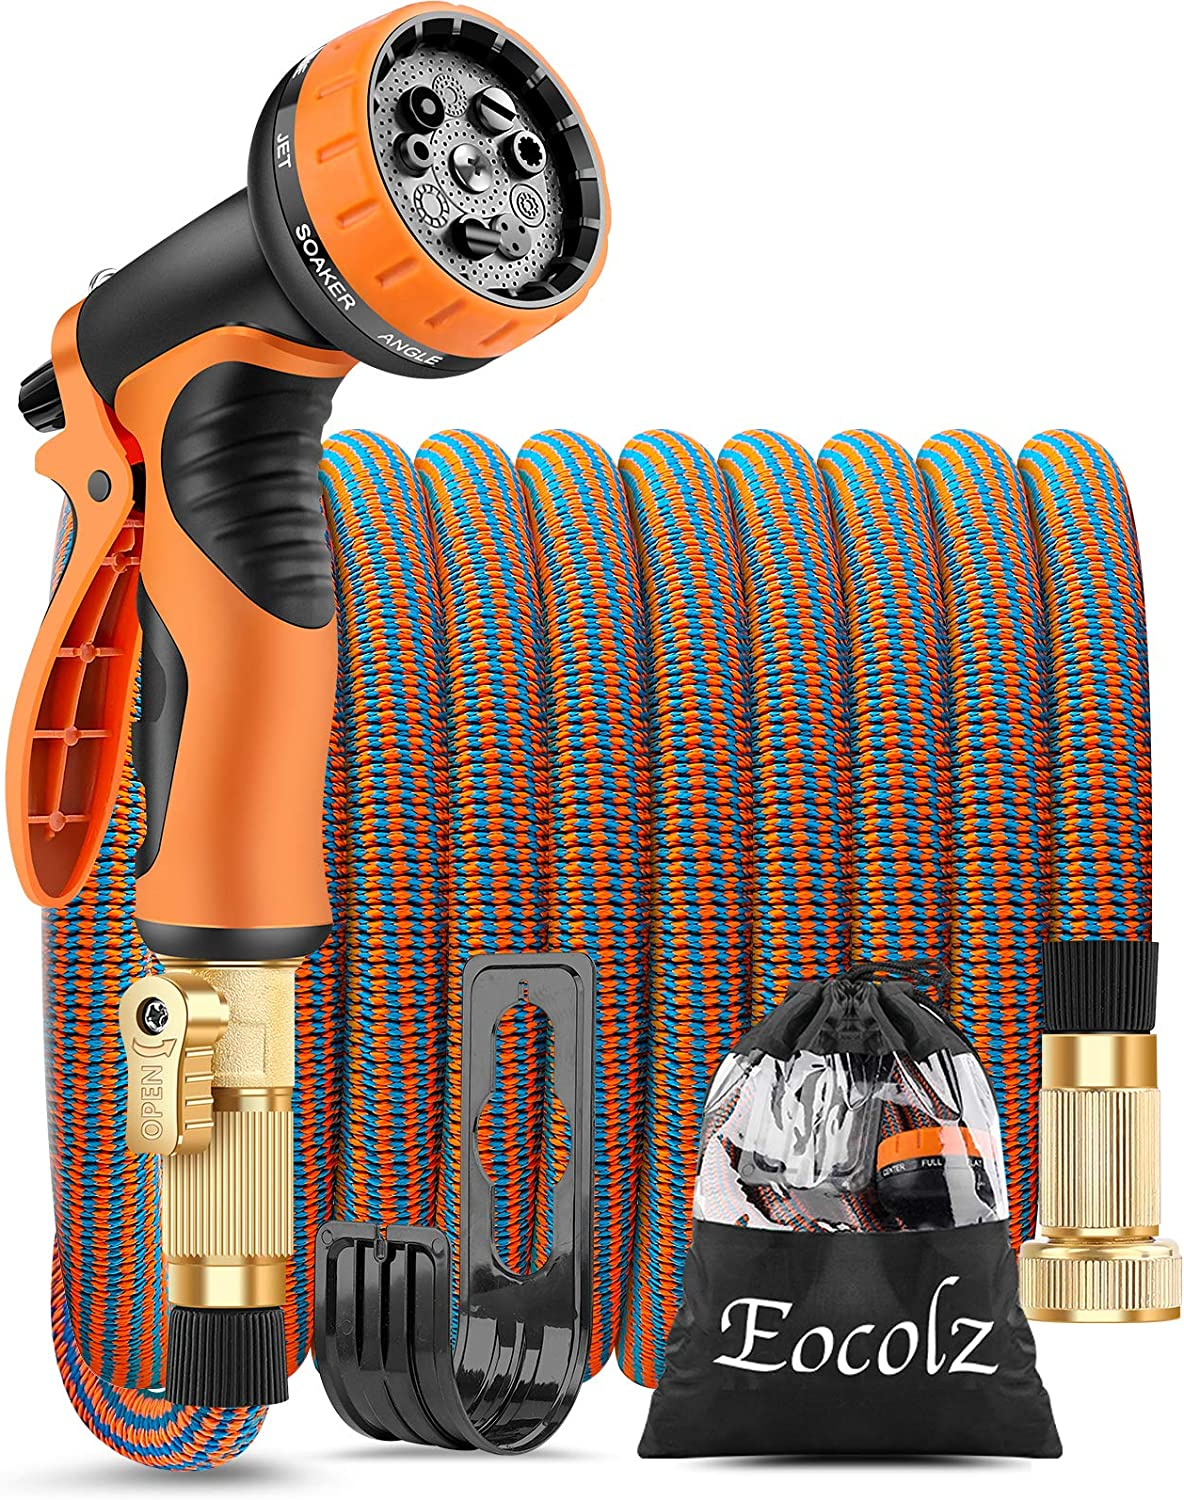 Eocolz Expandable Garden Hose 75ft Flexible Water Hose Leakproof with Durable No-Kink Solid Brass Fittings 3-Layers Latex Extra Strength Fabric Lightweight Expanding Hose Pipe for Watering Washing